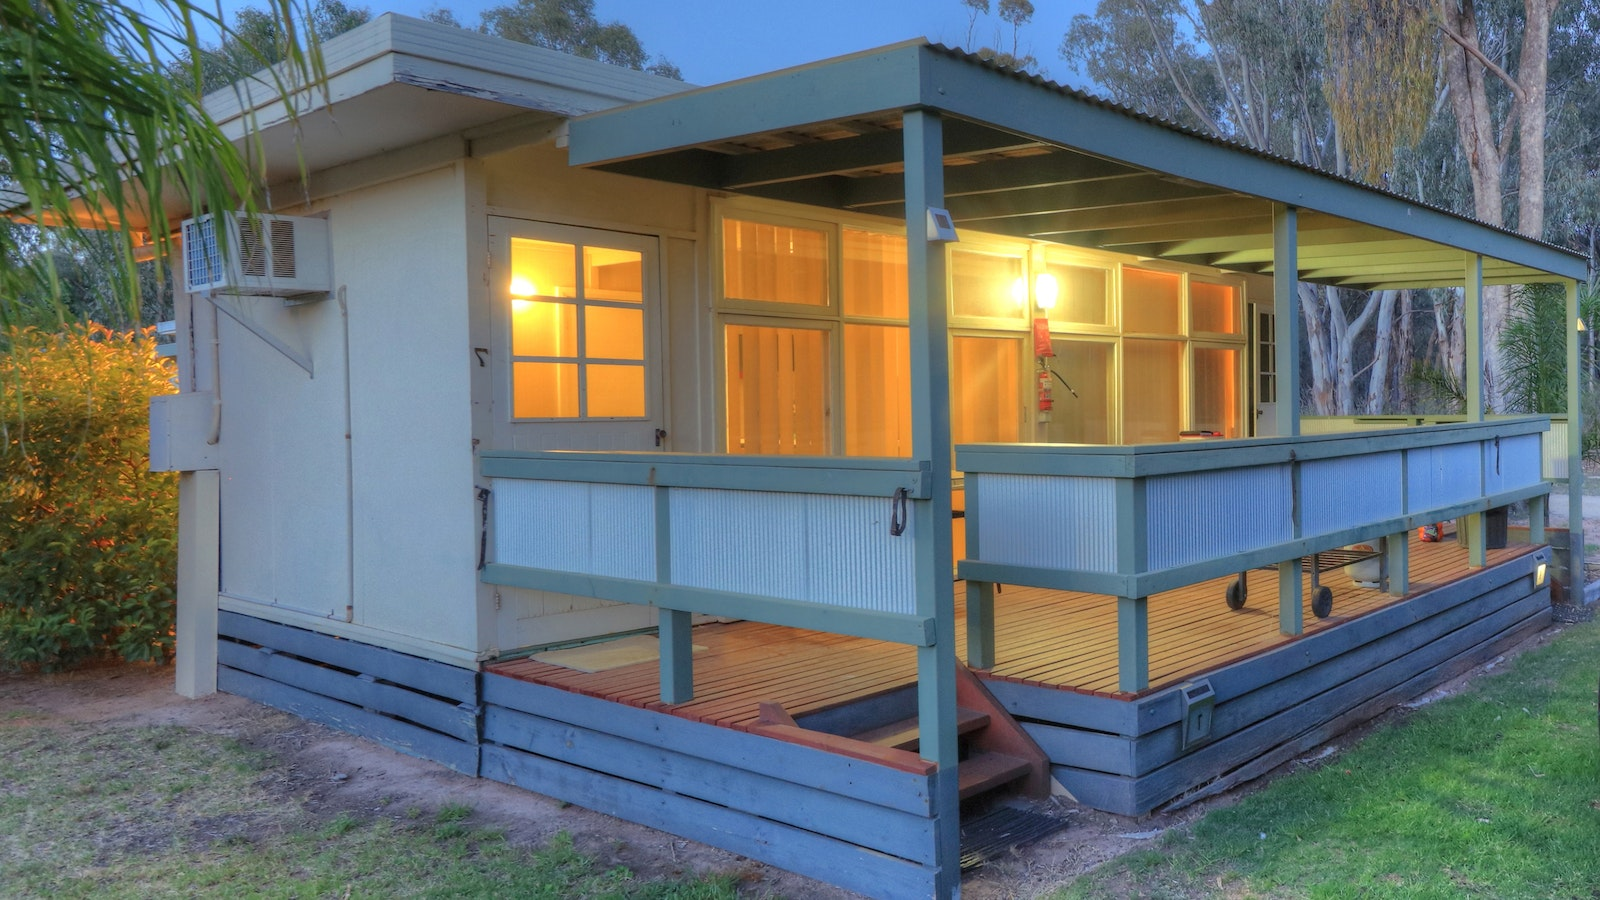 Budget 2 Berth cabin with attached private bathroom